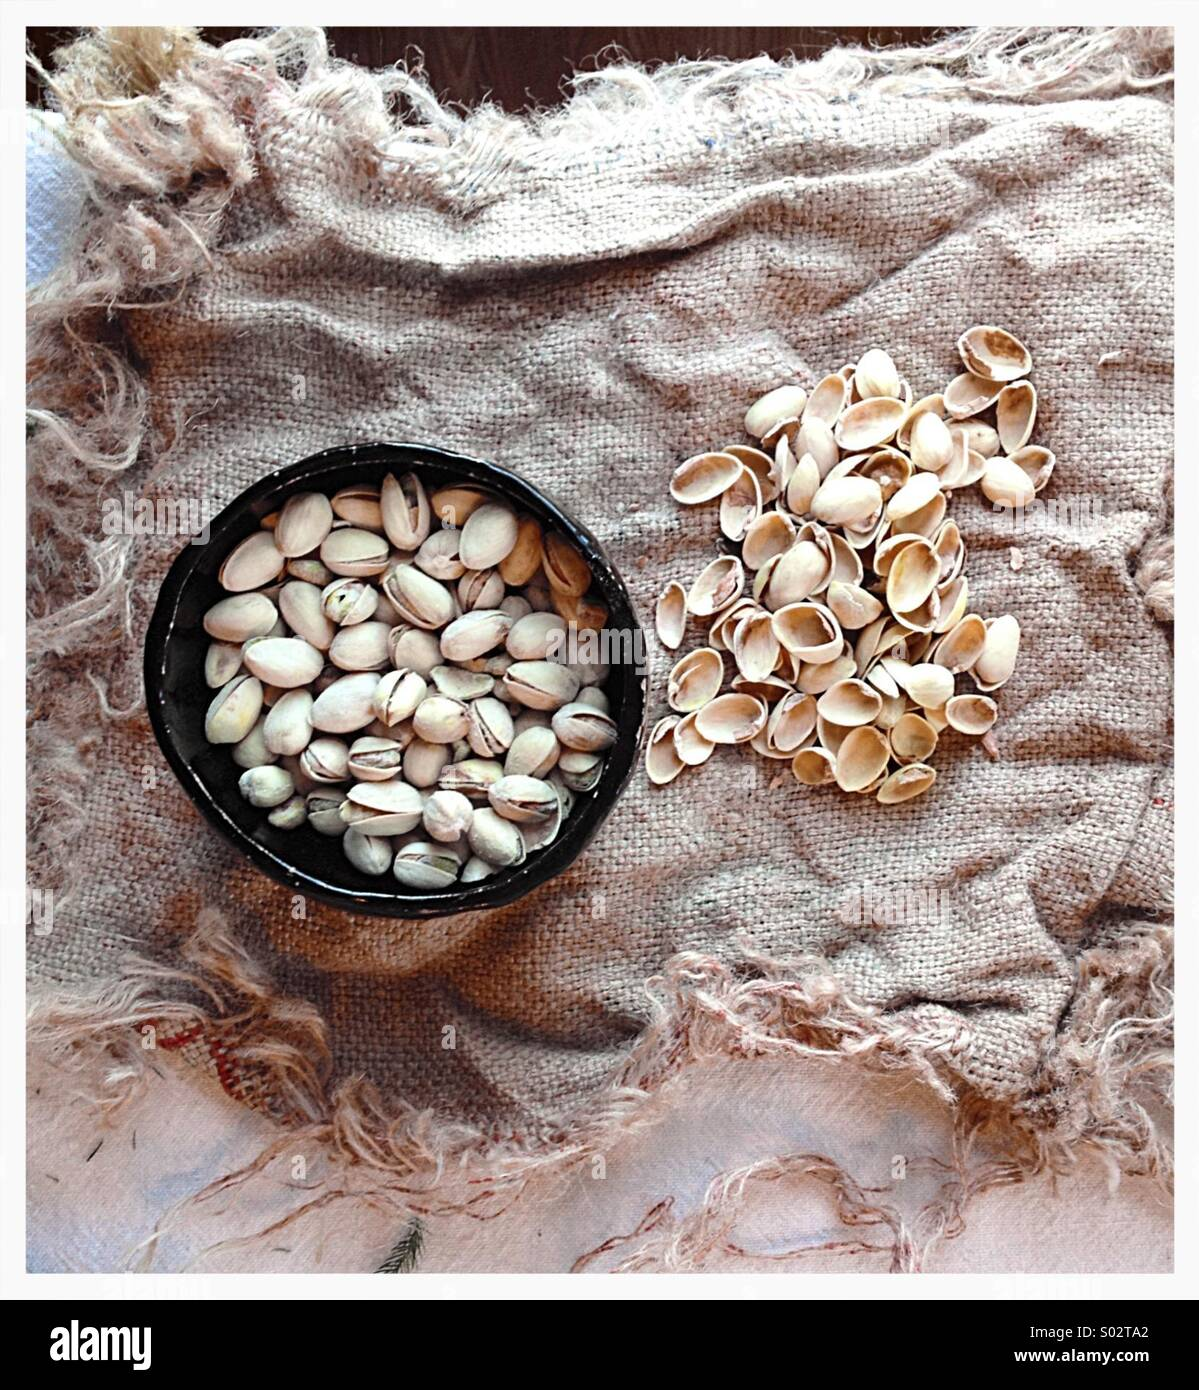 Pistachios in bowl on burlap - Stock Image